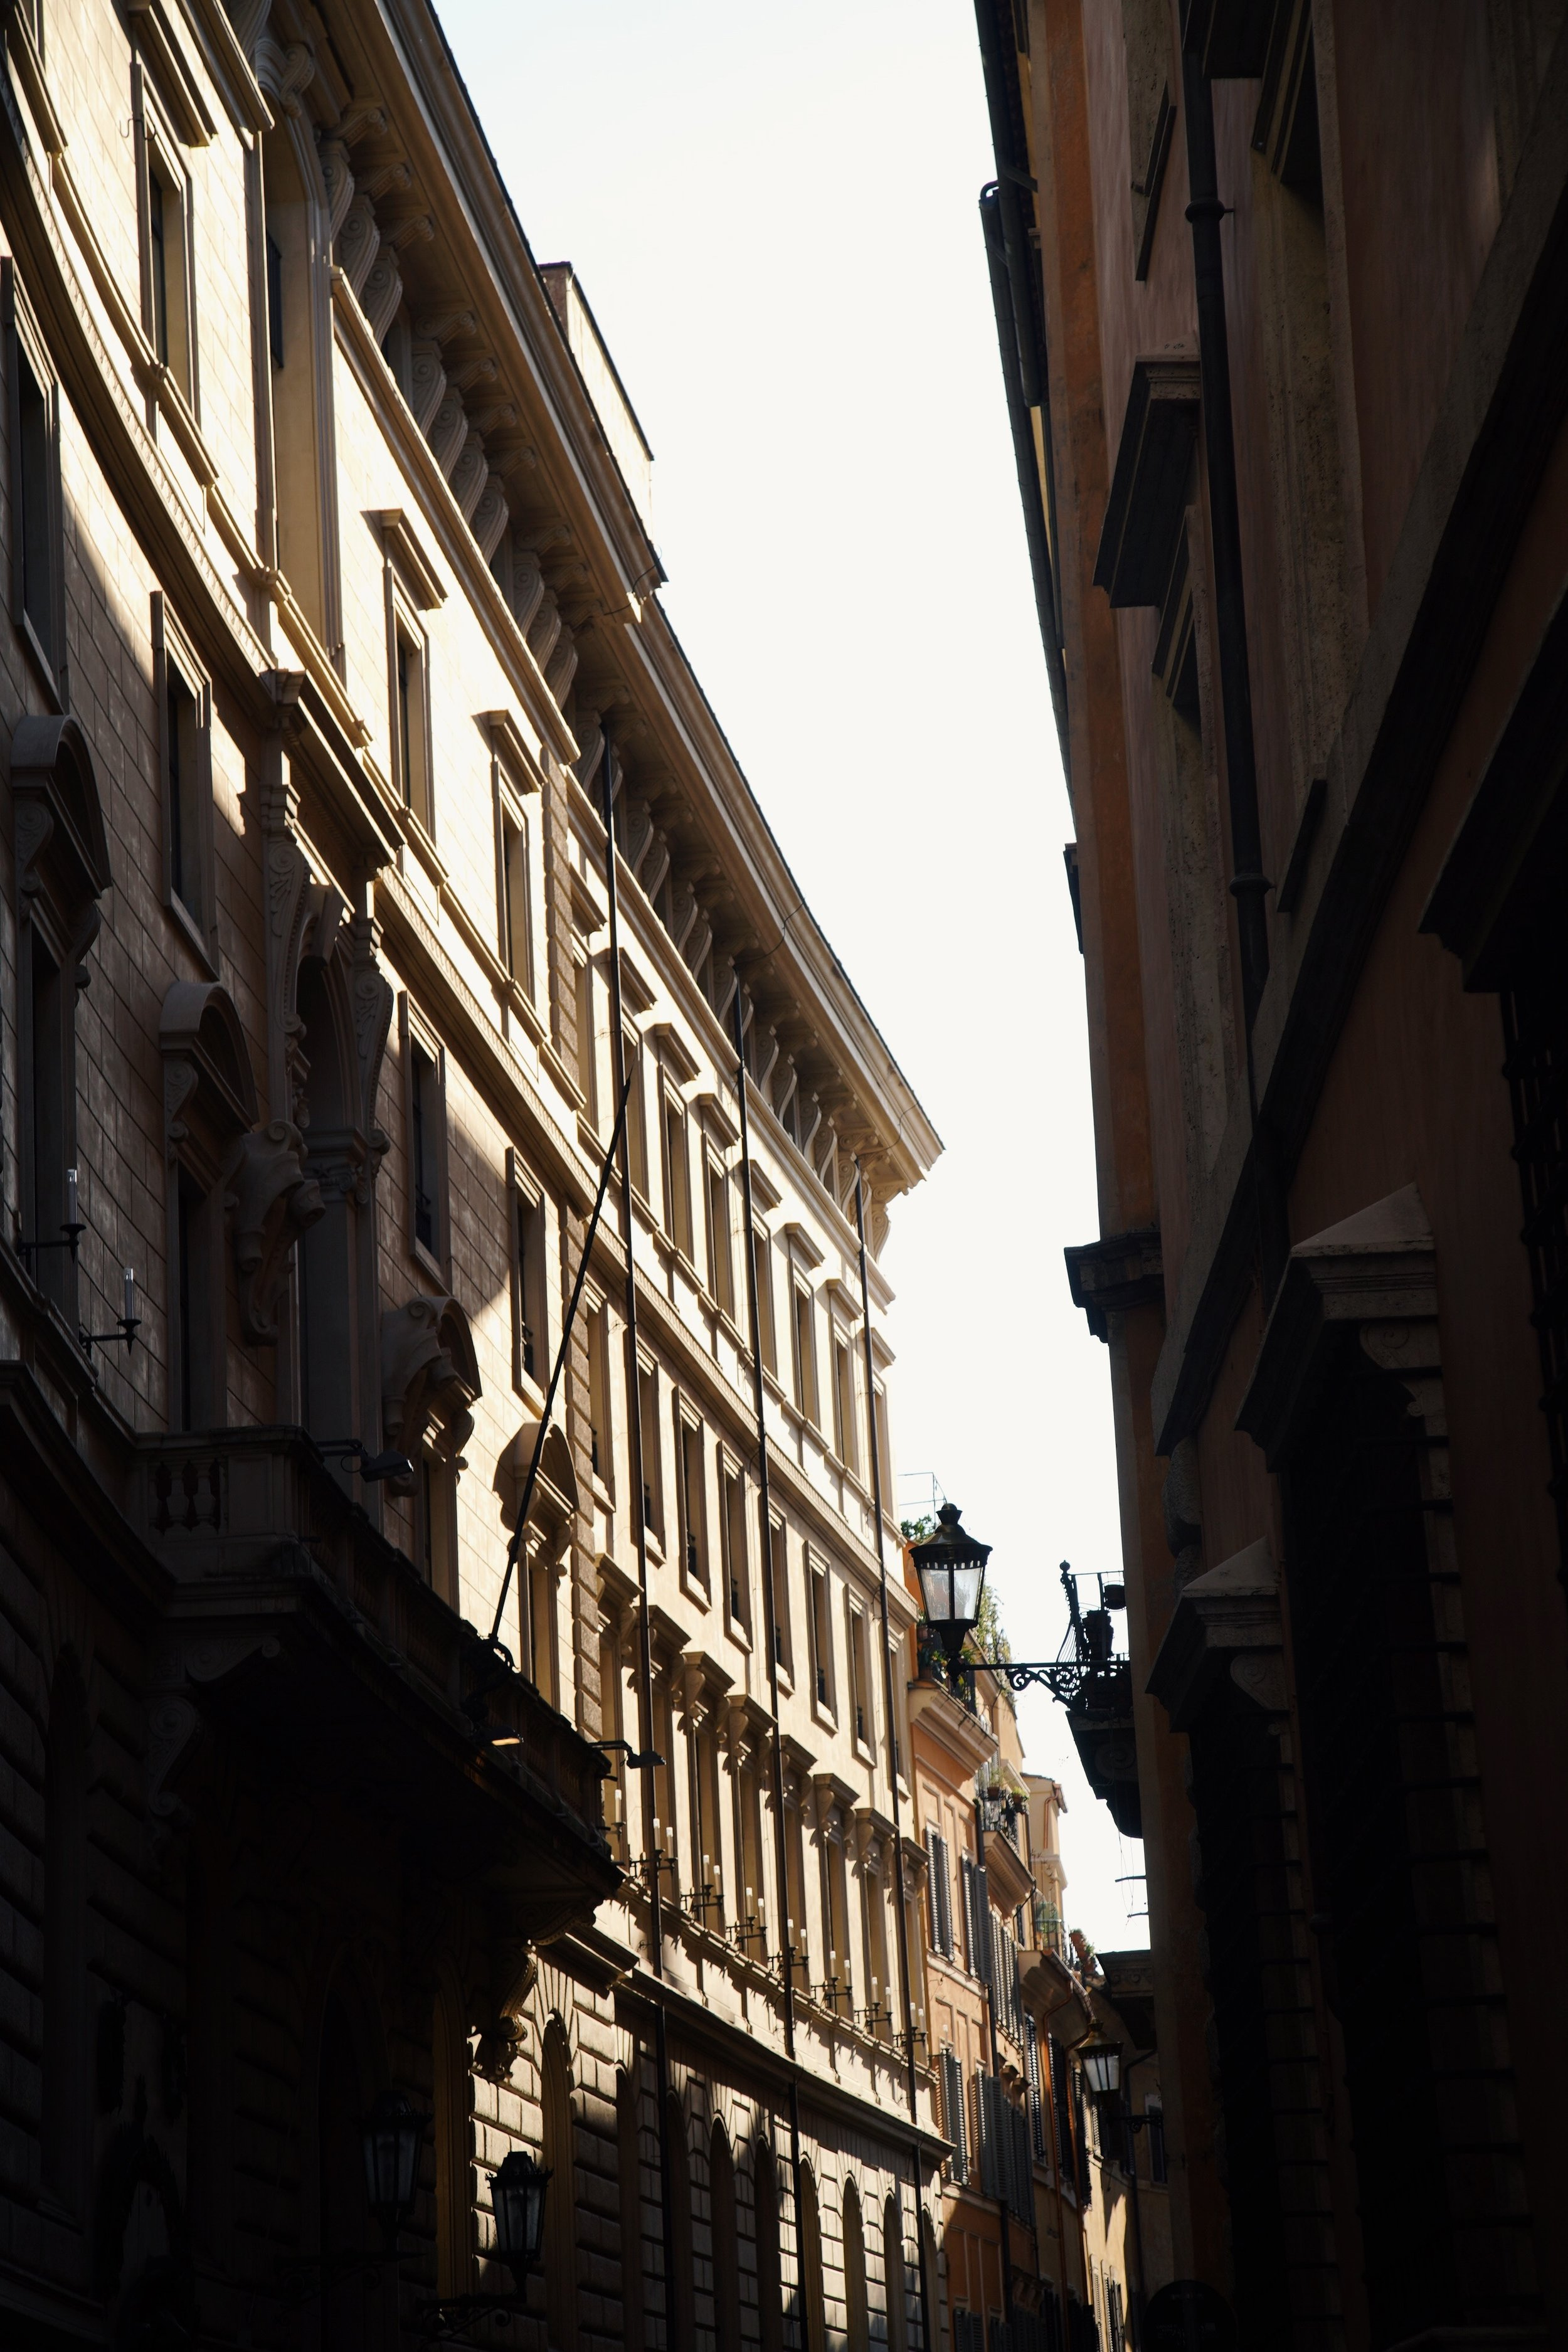 A beautiful narrow street in Milan